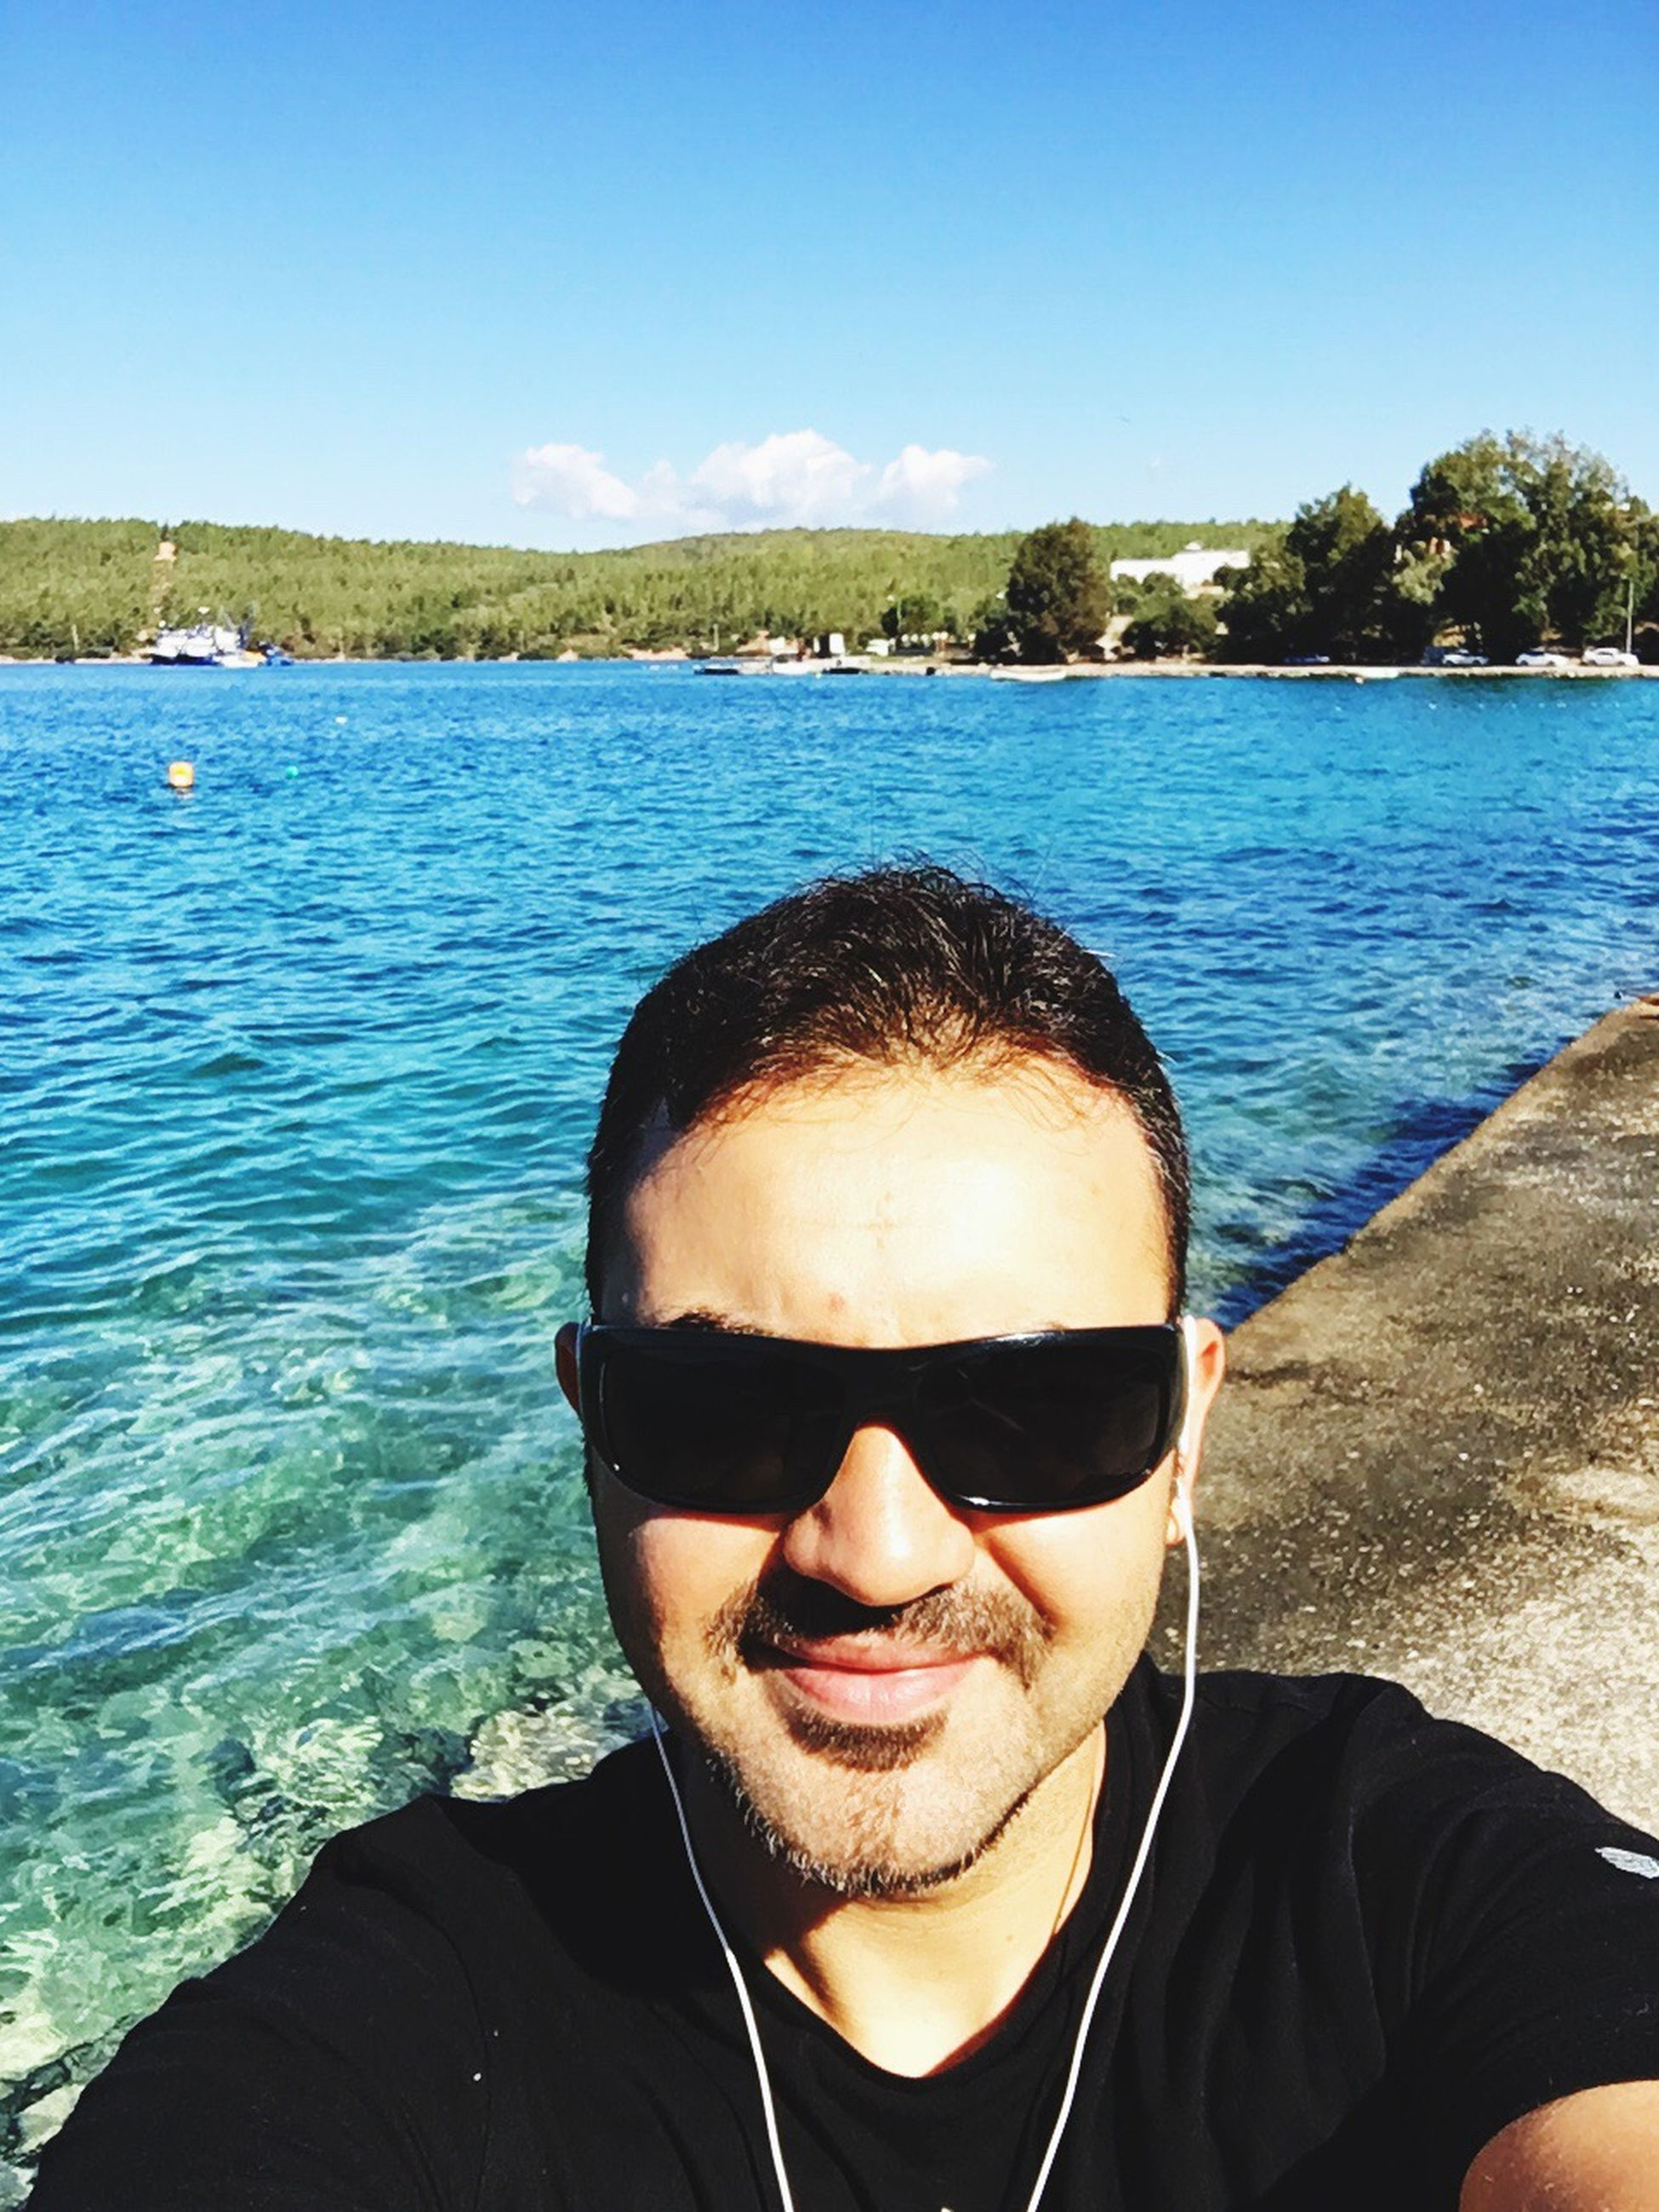 water, leisure activity, sunglasses, young men, young adult, sunlight, lifestyles, looking at camera, sky, sunny, front view, portrait, headshot, summer, person, vacations, day, blue, handsome, cloud - sky, nature, city life, human face, scenics, sea